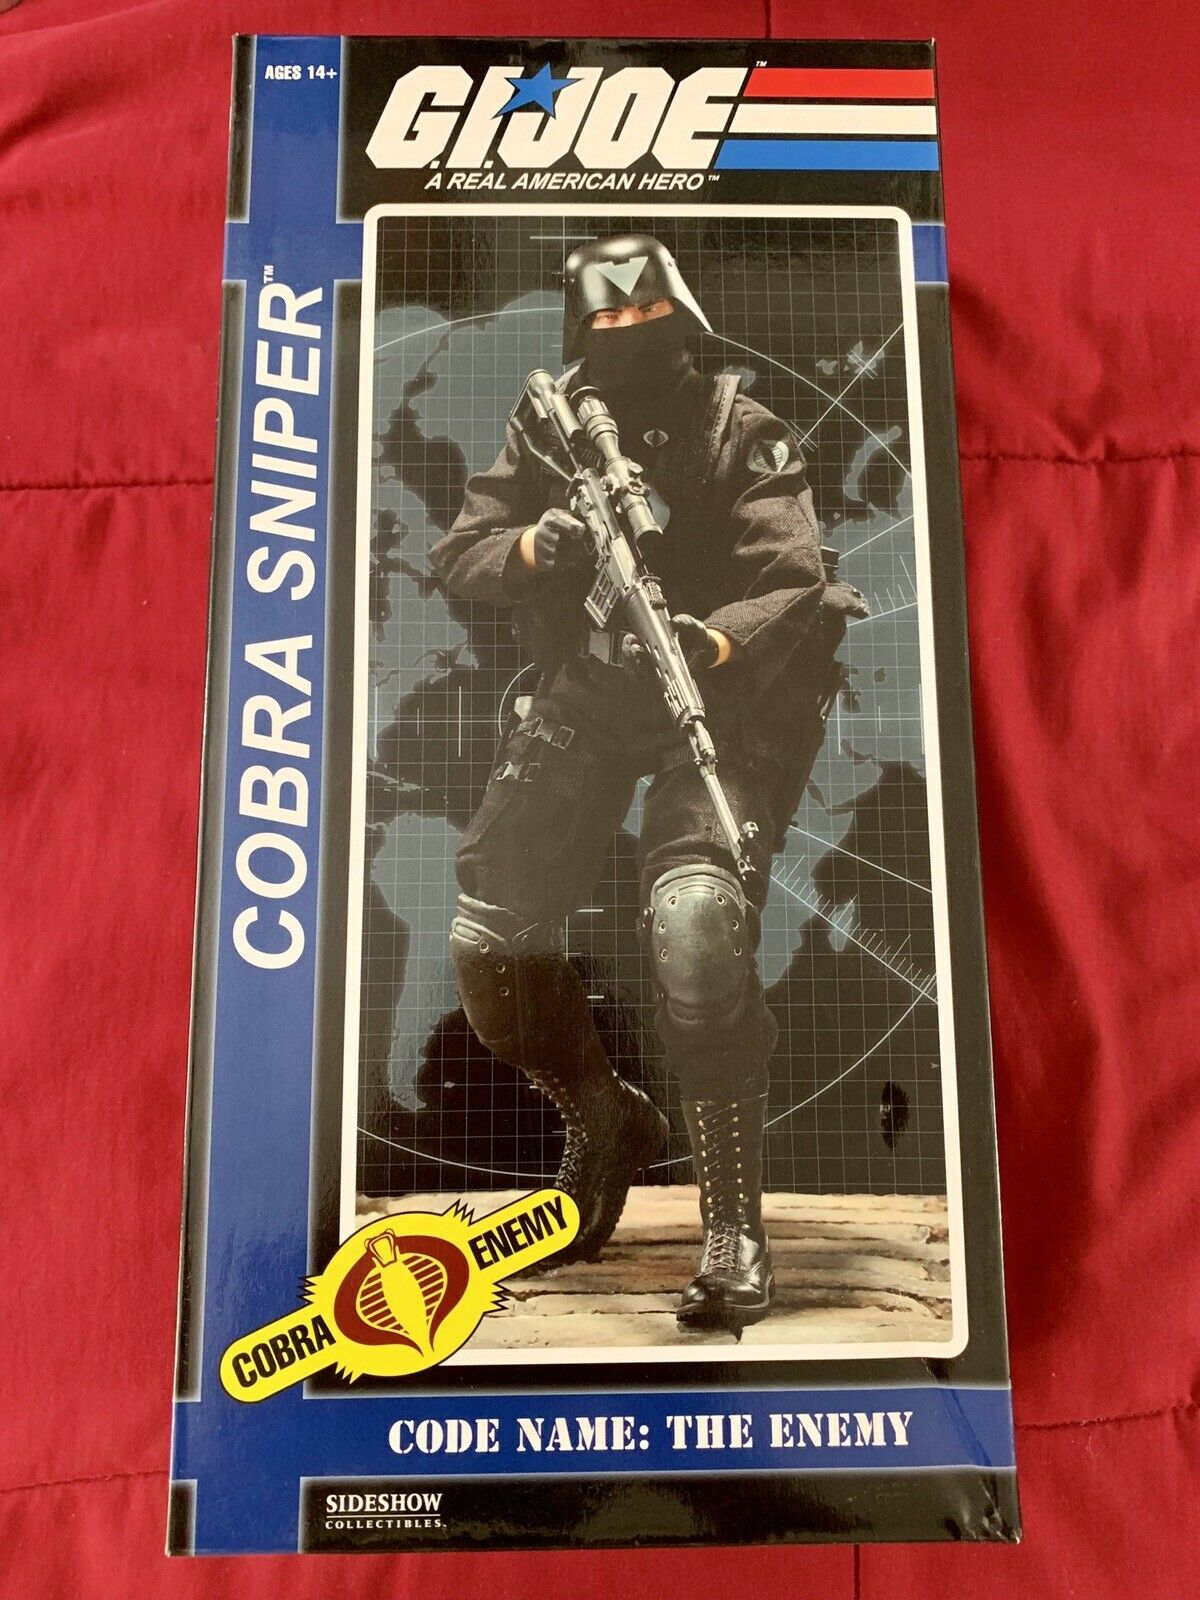 Sideshow Collectibles G.I. Joe Cobra Sniper The Enemy 1 6 New